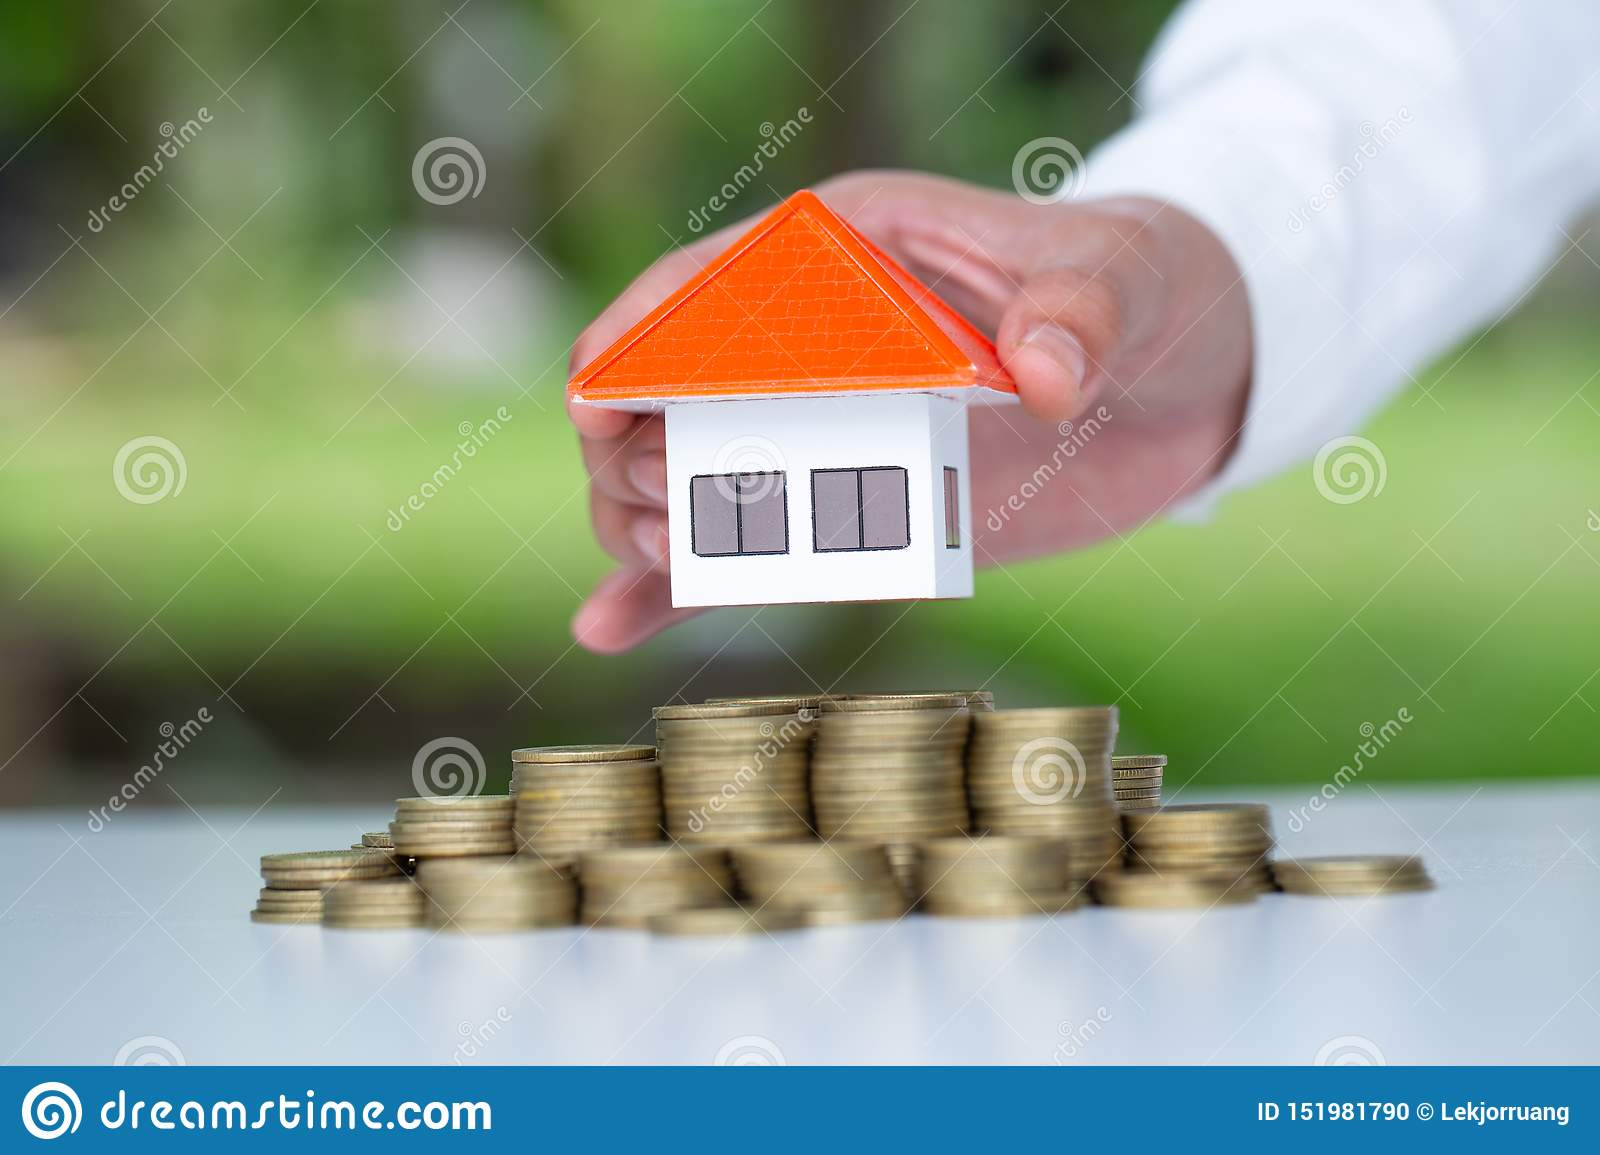 Human hand putting house model on coins stack, planning savings money of coins to buy a home concept, mortgage and real estate